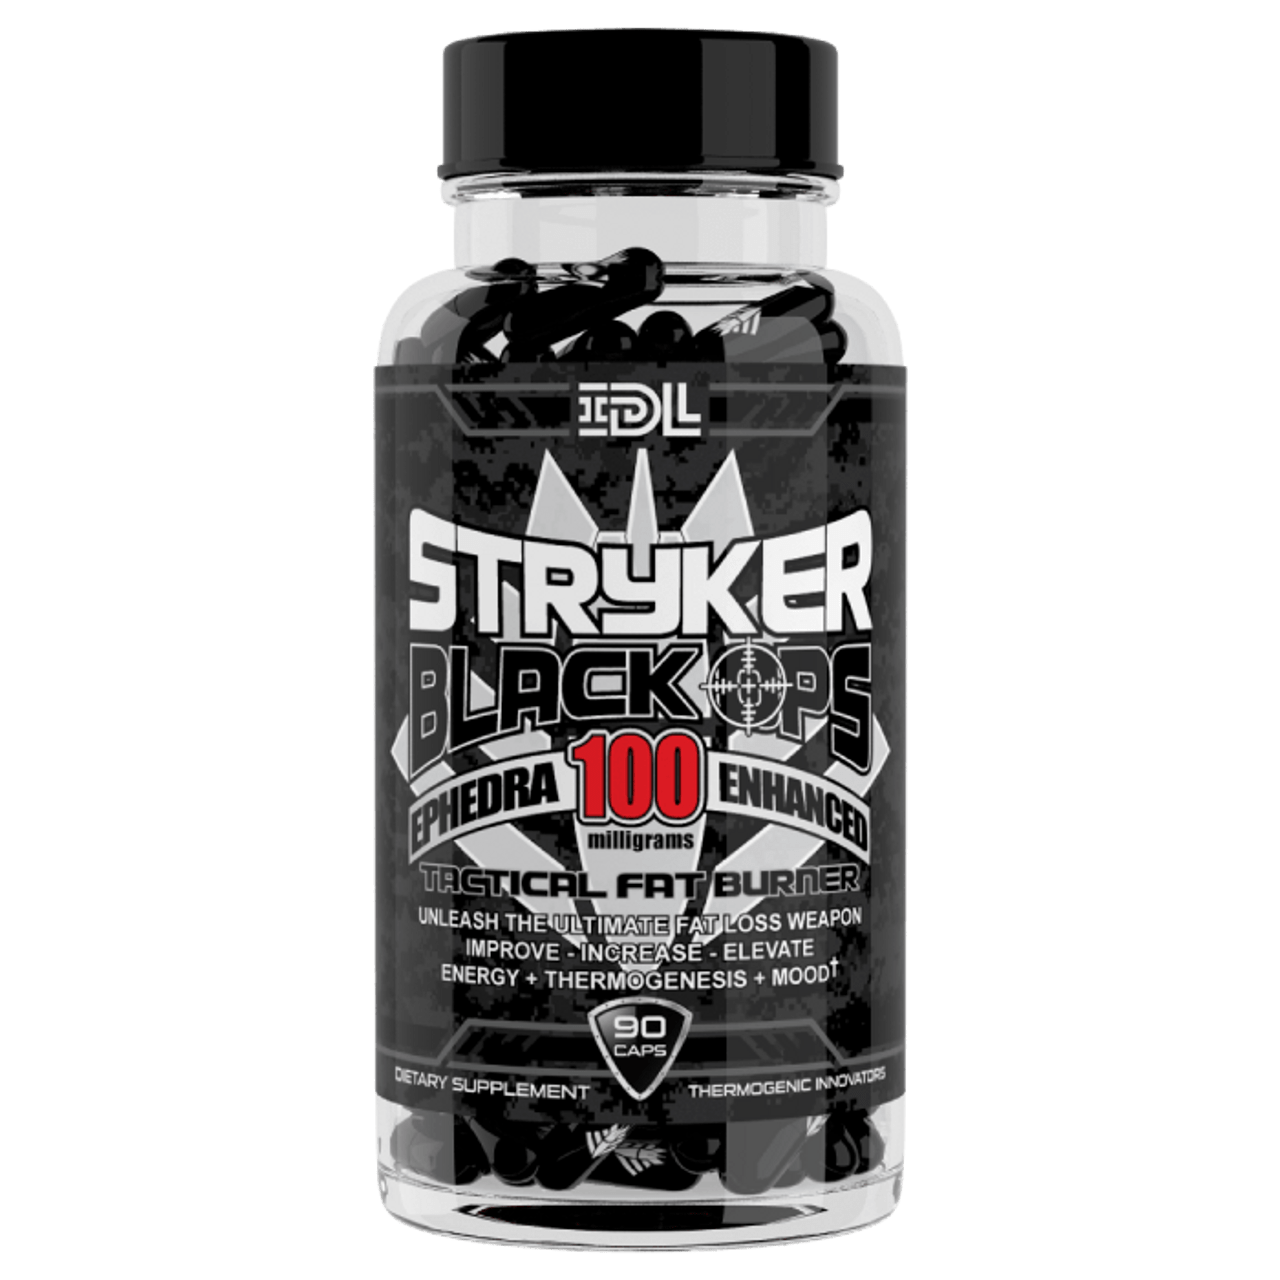 Stryker Black-Ops 90ct Tactical Ephedra Fat Burner